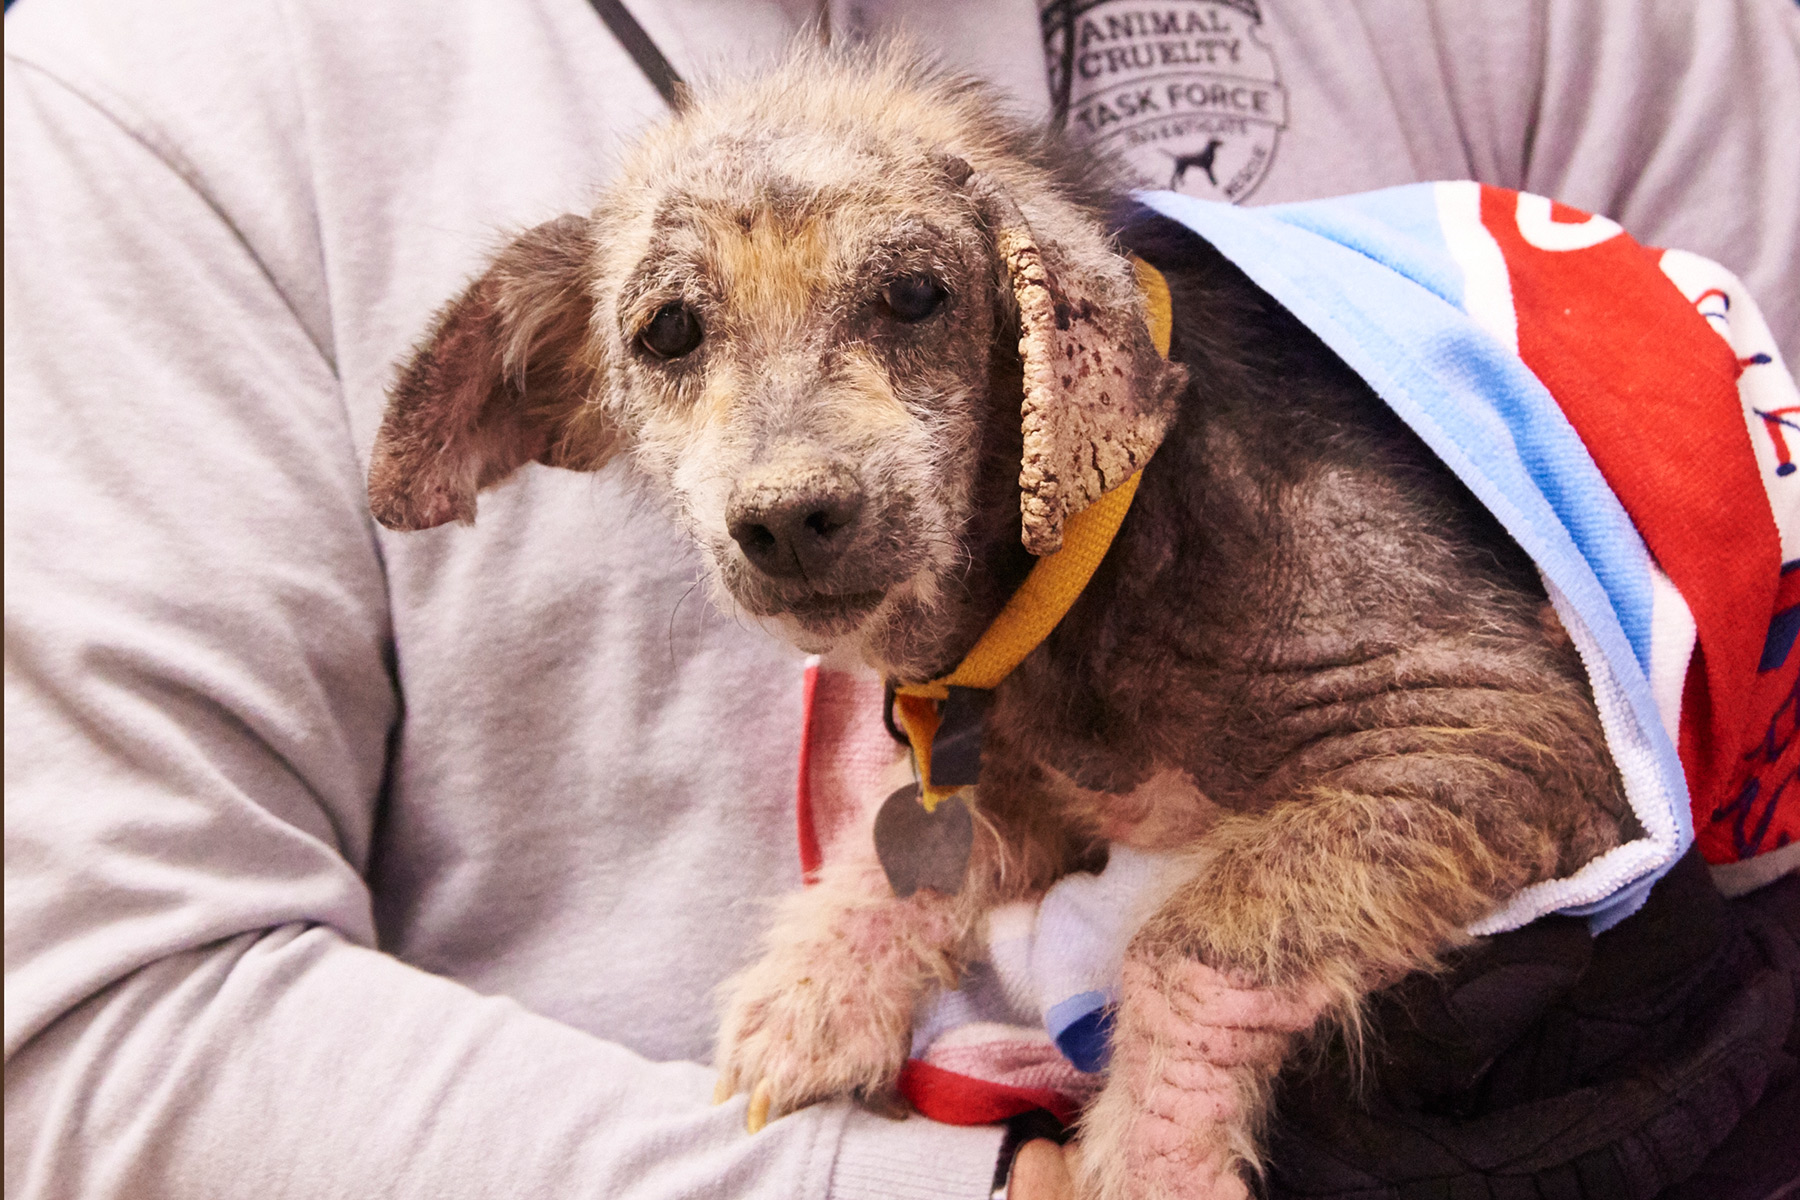 Nicky dog rescued from Newton County